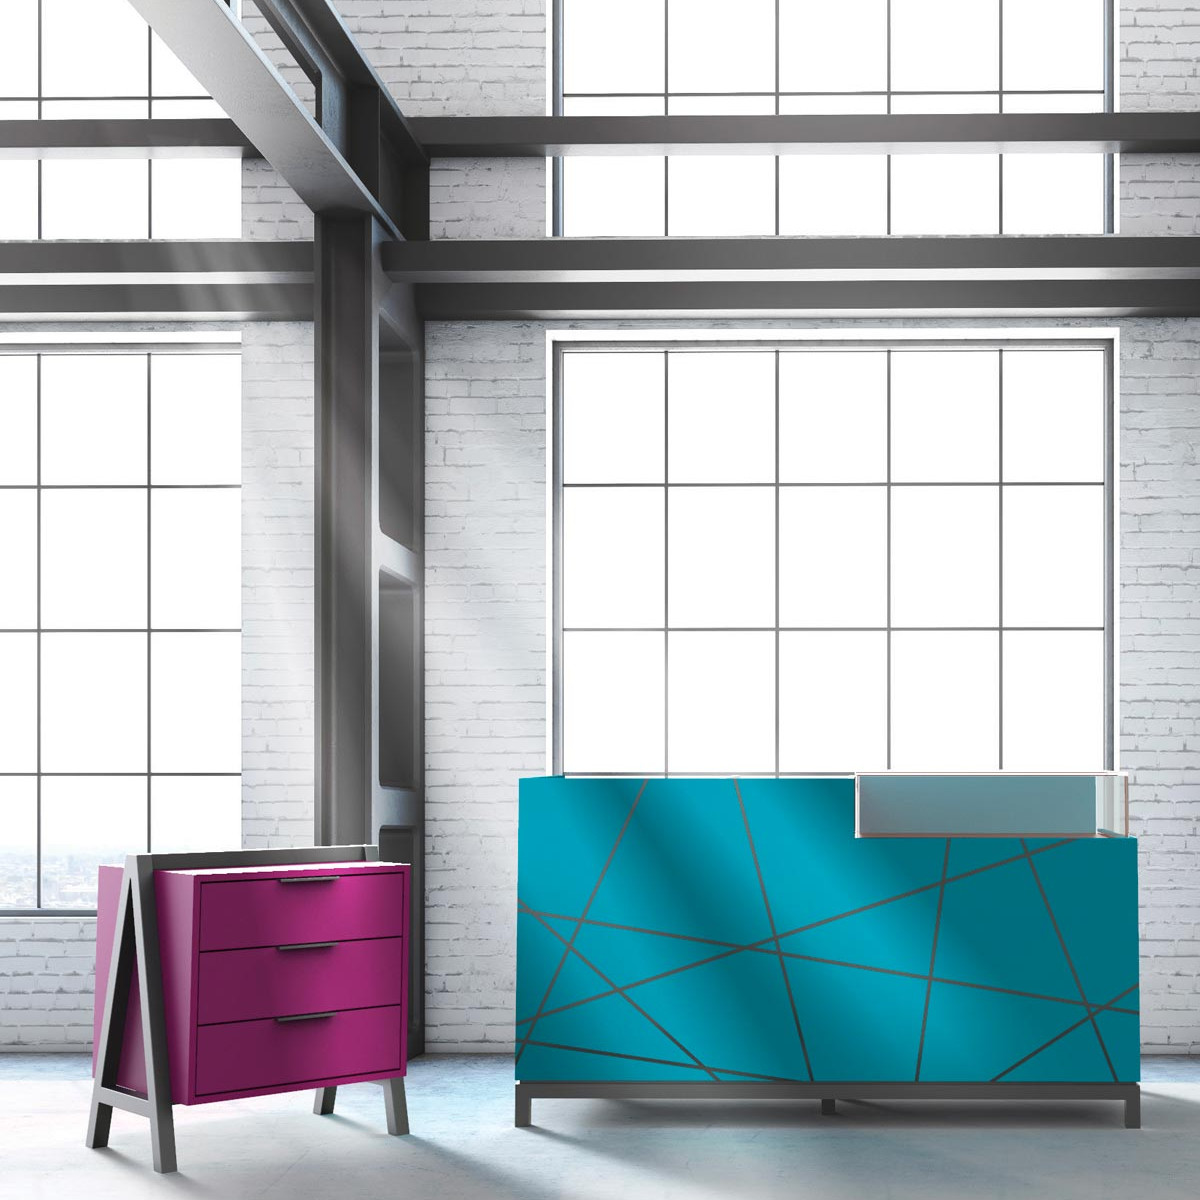 Line 9 <p><strong>Chest of drawers and Counter</strong></p> <p>Chest of drawers painted in purple violet chipboard / drawers mounted on soft closing rails with painted frontal and matt black handles / metal elements in matt black.<br /> Counter in painted water blue chipboard with UV printed decoration (frontal and sides) / glass case with pull-out tray / metal basement in matt black.</p>